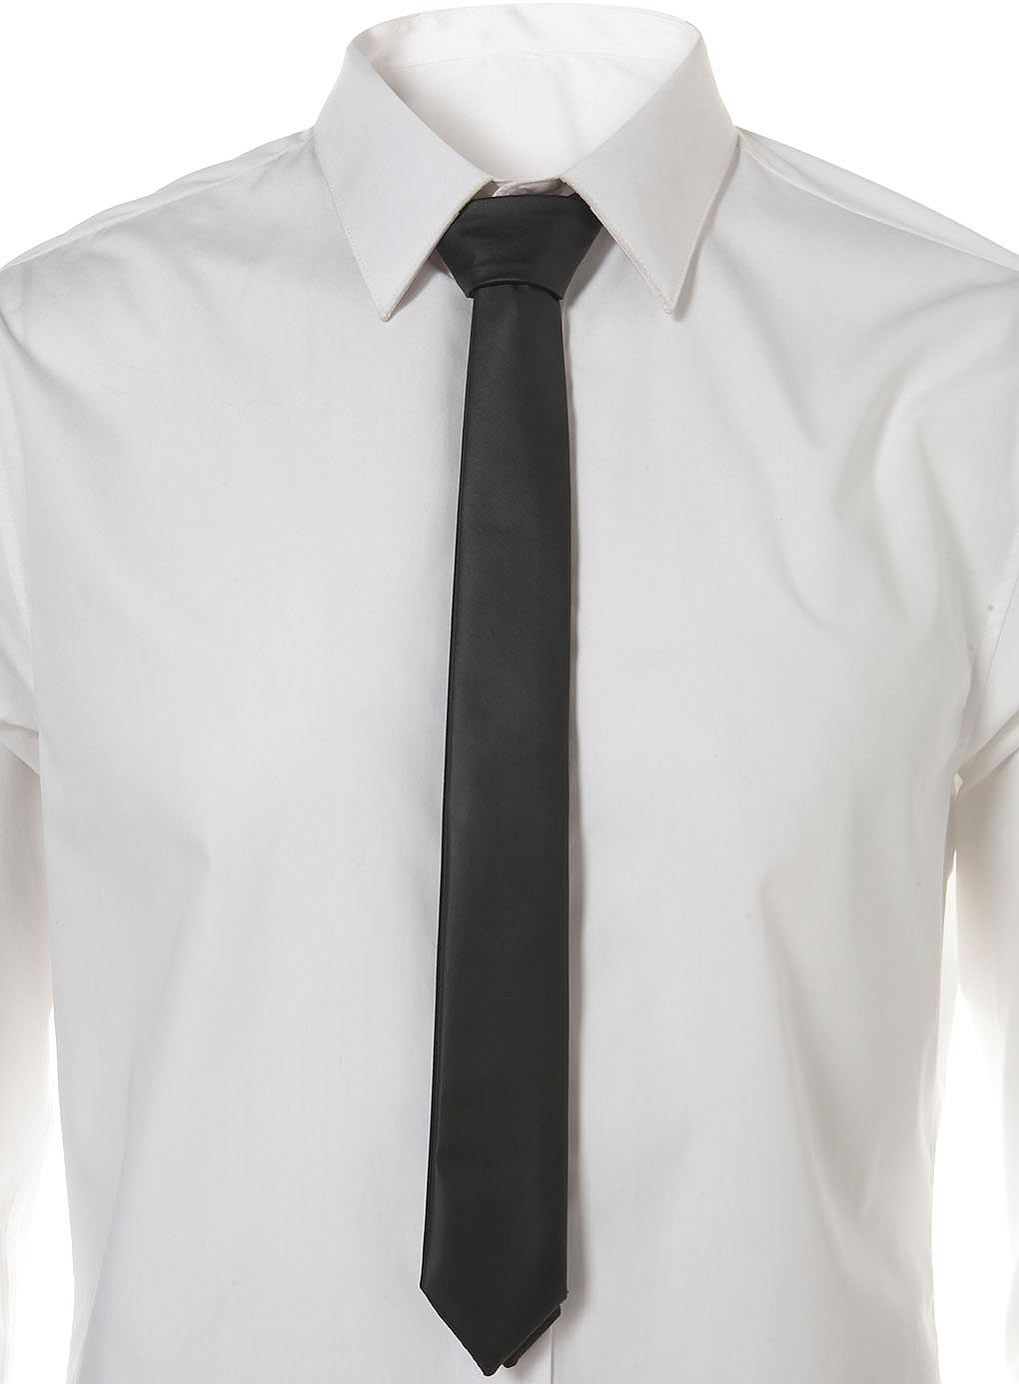 BLACK FAUX LEATHER TIE from #Topman